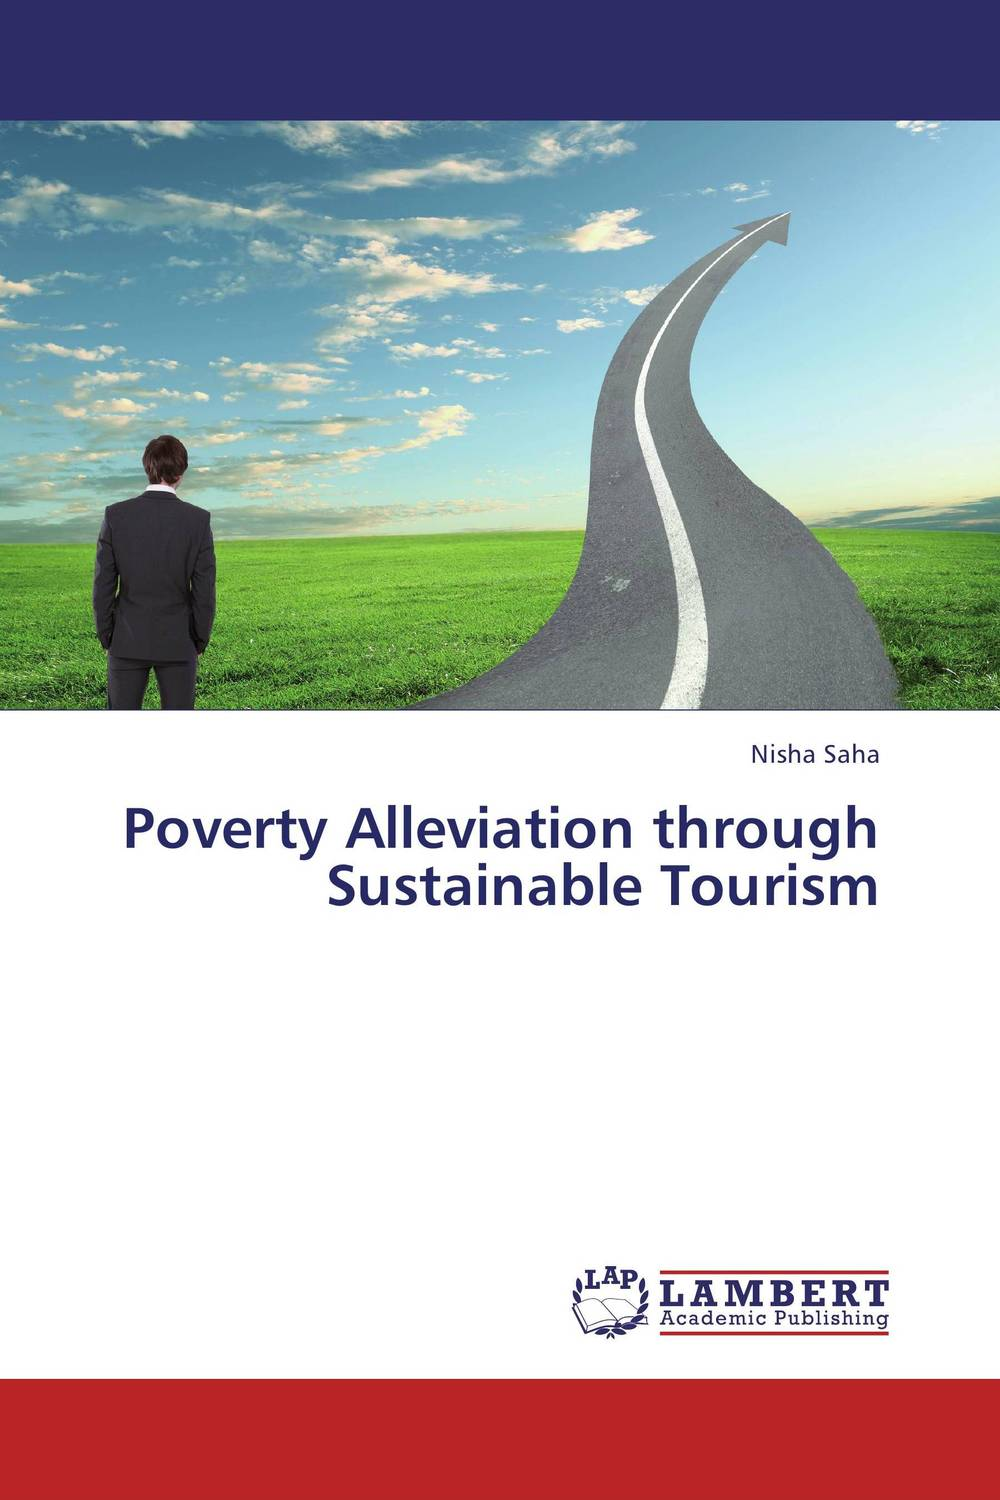 Poverty Alleviation through Sustainable Tourism taisser h h deafalla non wood forest products and poverty alleviation in semi arid region